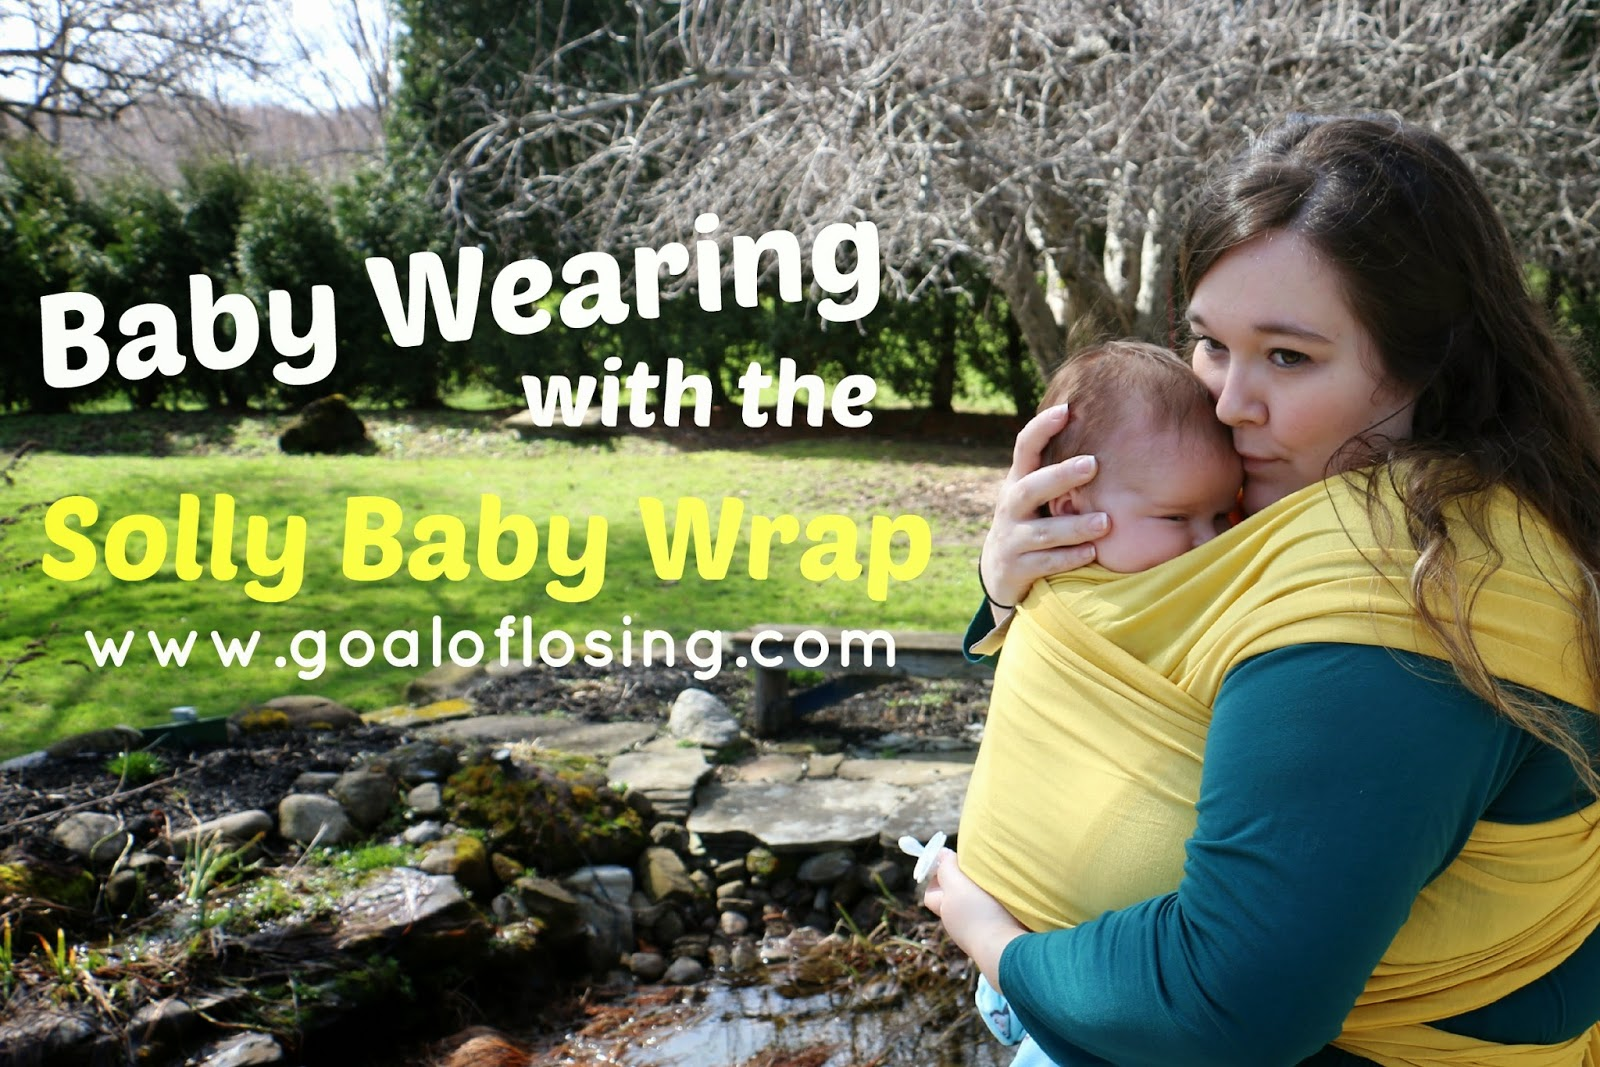 Goal Of Losing Baby Wearing And Solly Baby Review